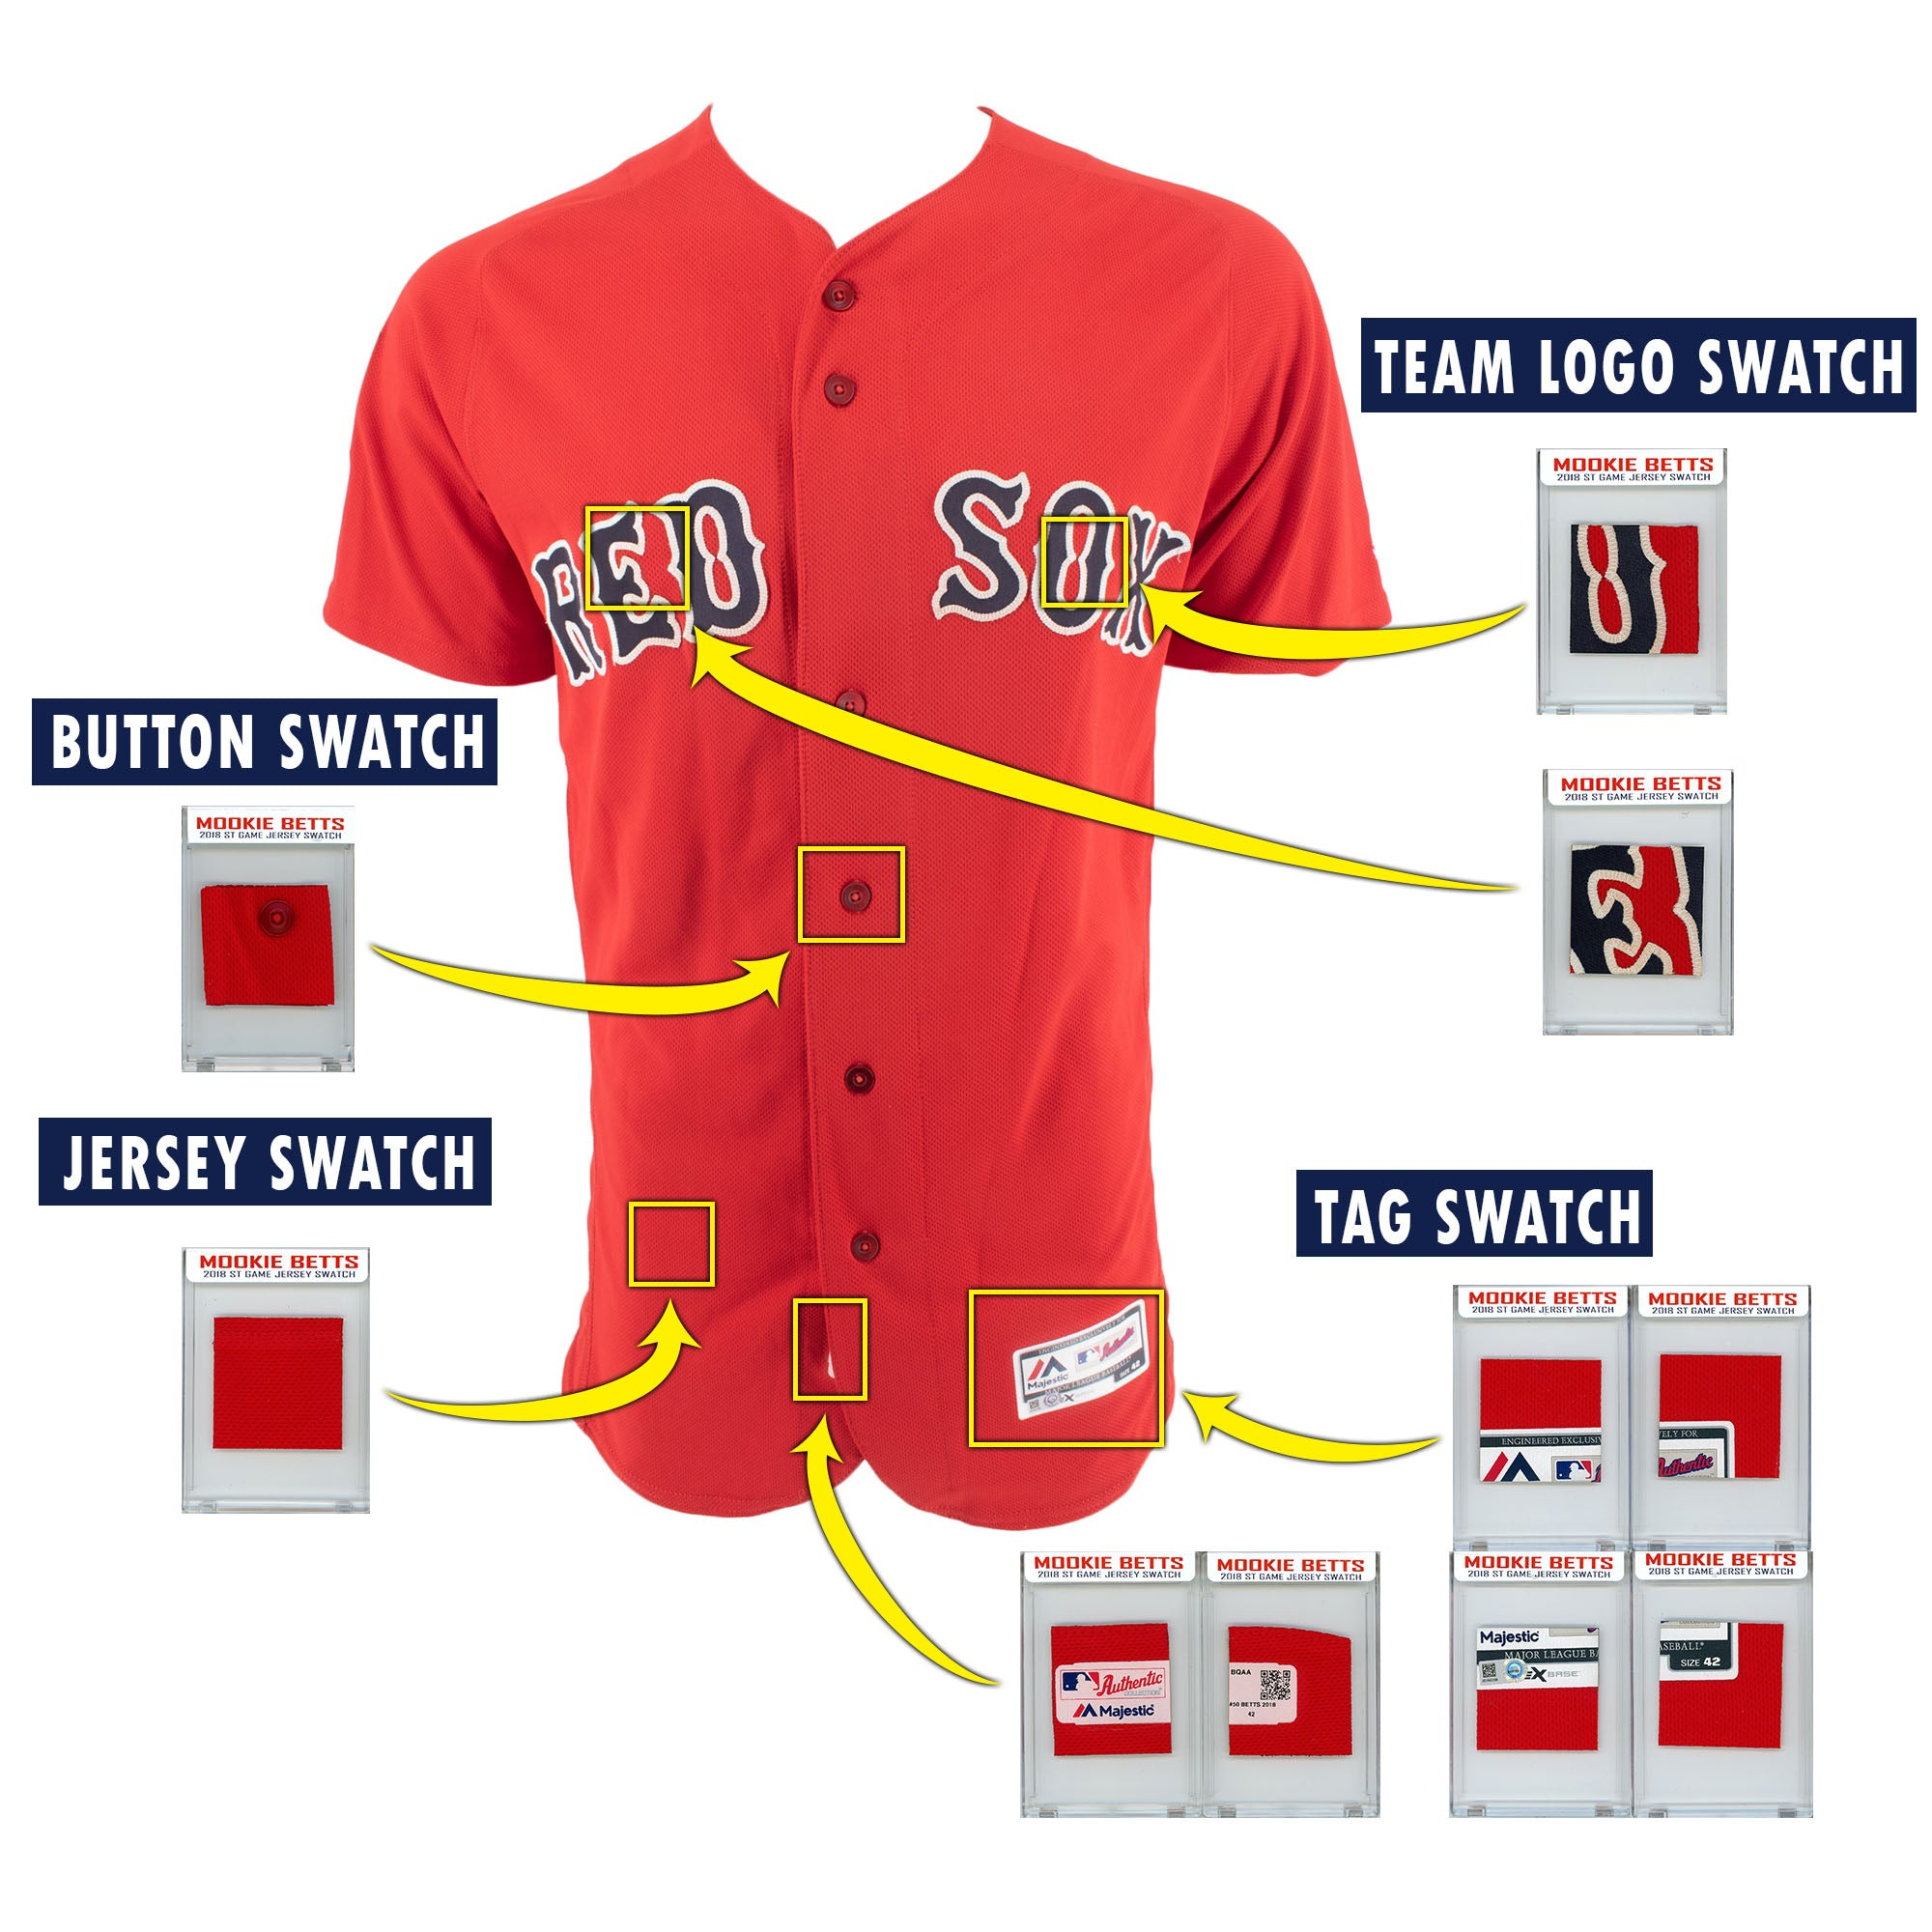 MOOKIE BETTS 2018 RED SOX GAME WORN JERSEY MYSTERY SWATCH BOX!